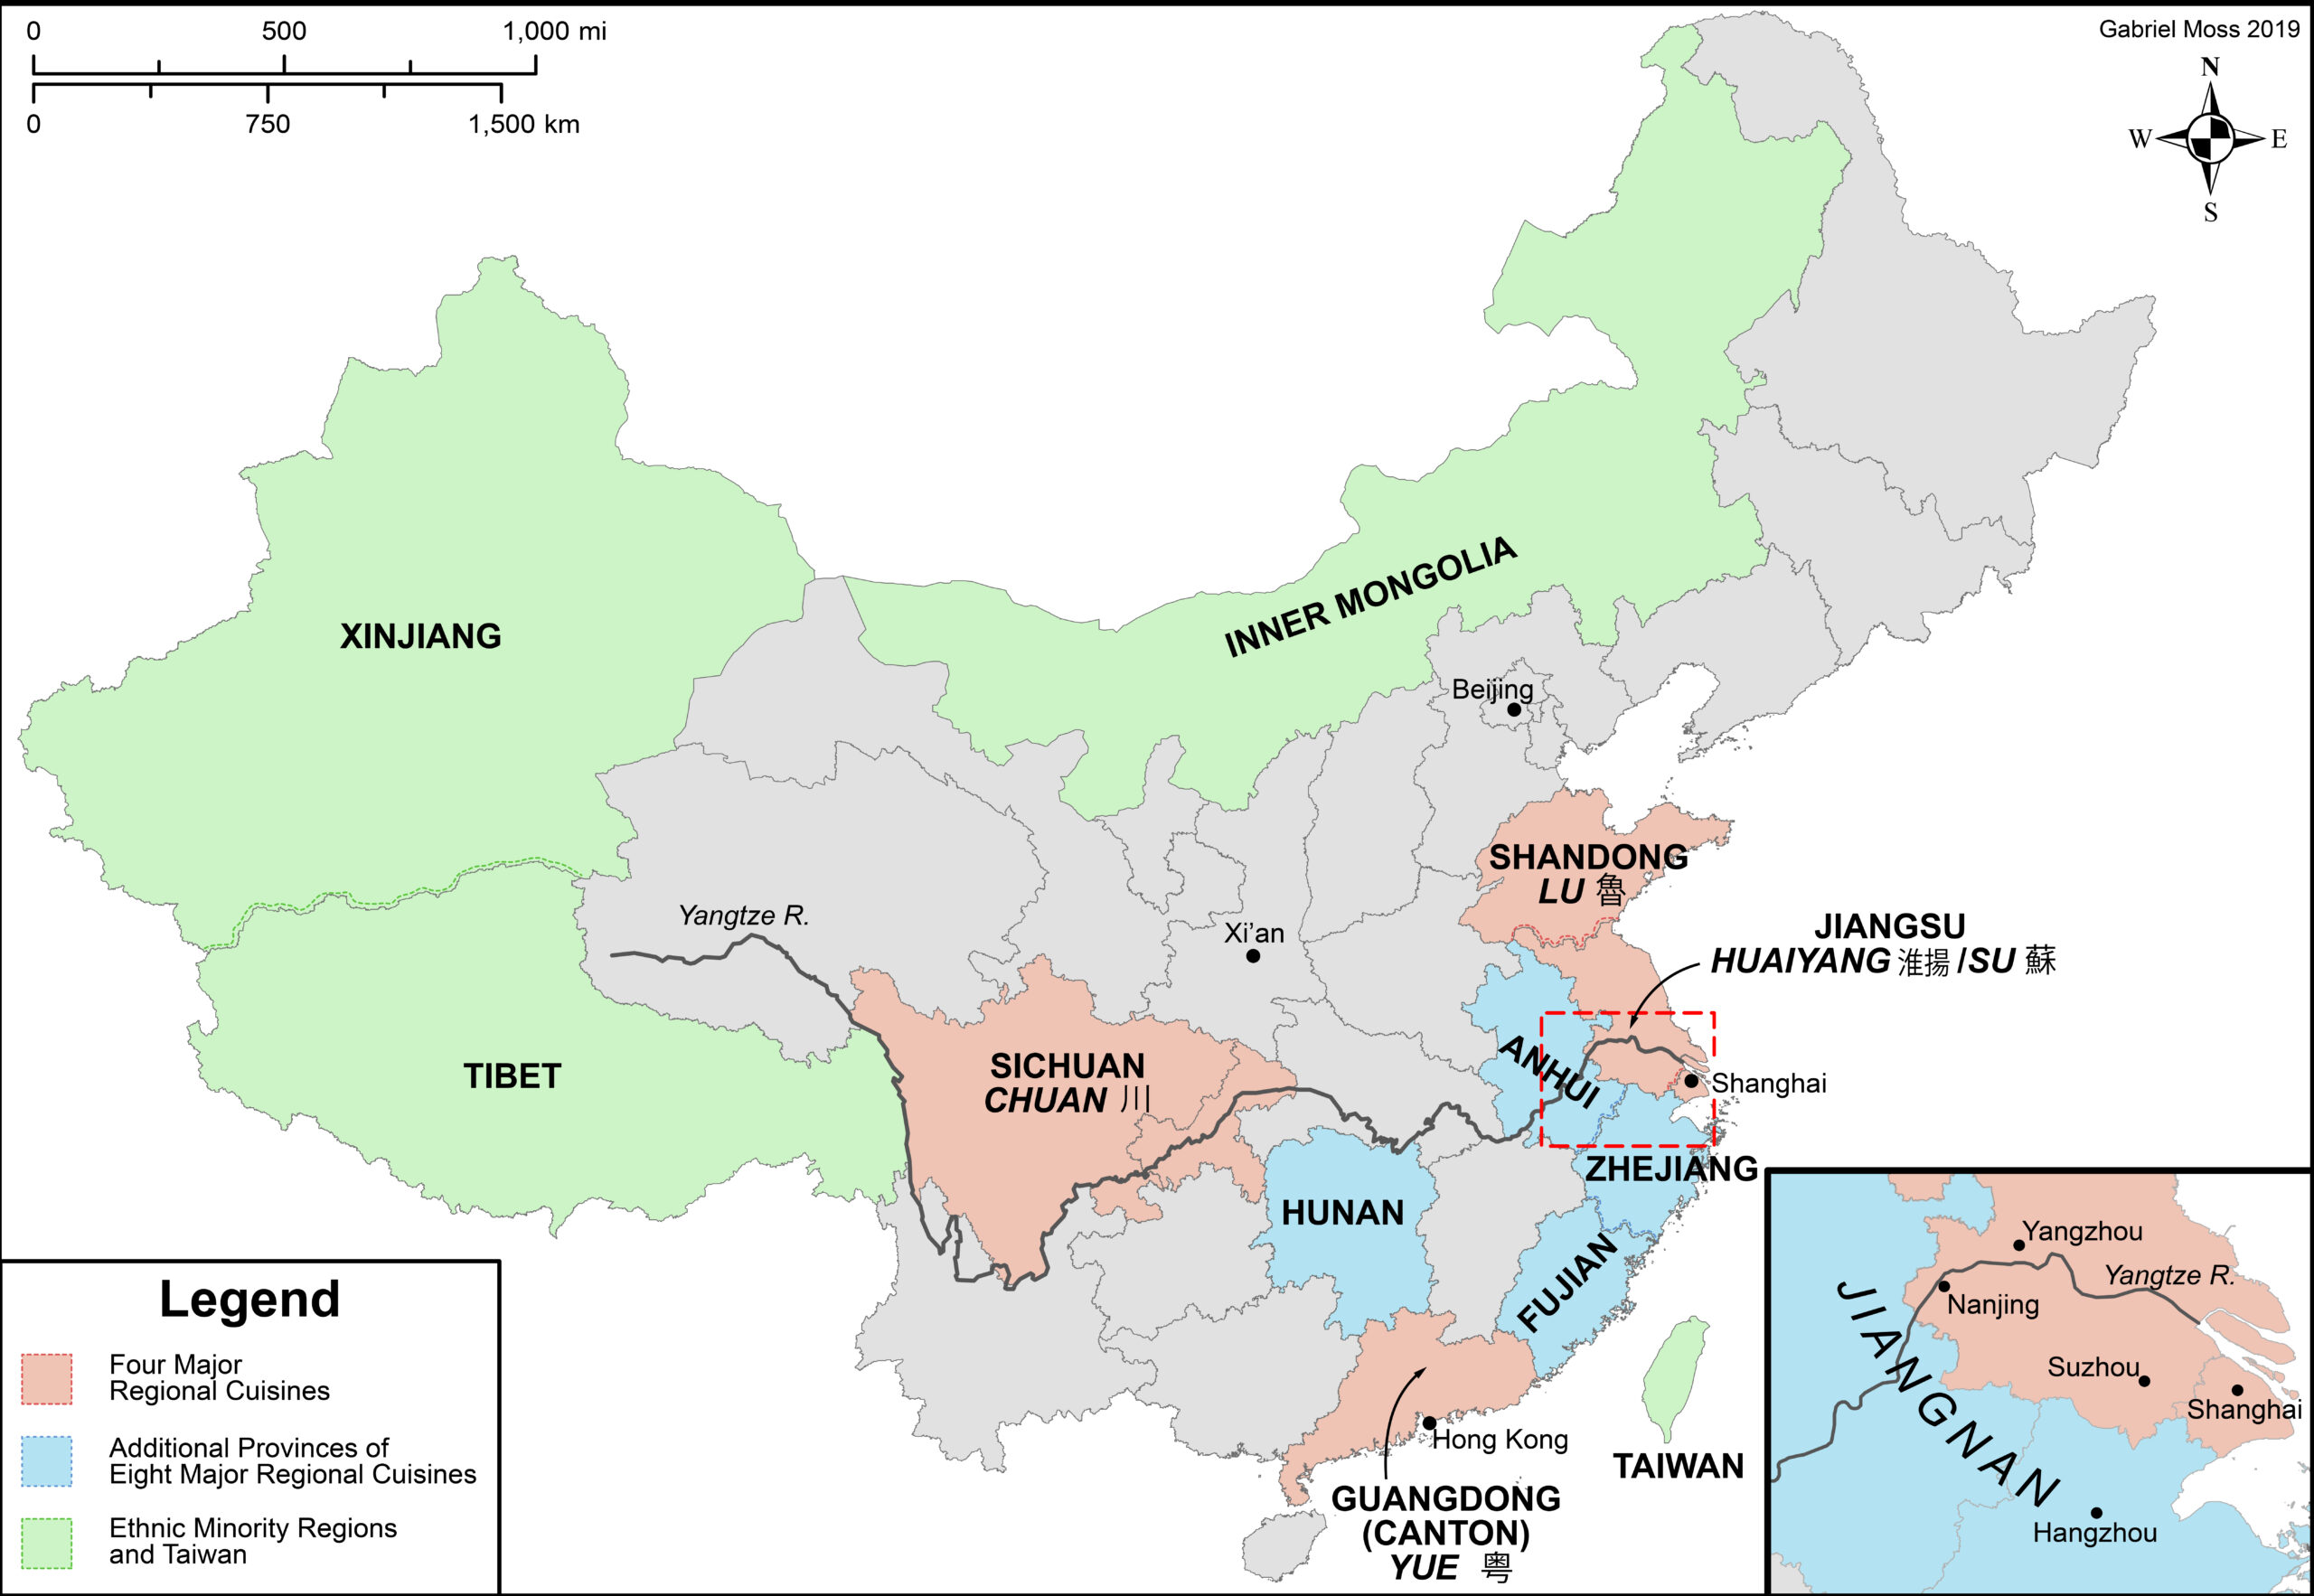 A map of China's culinary regions